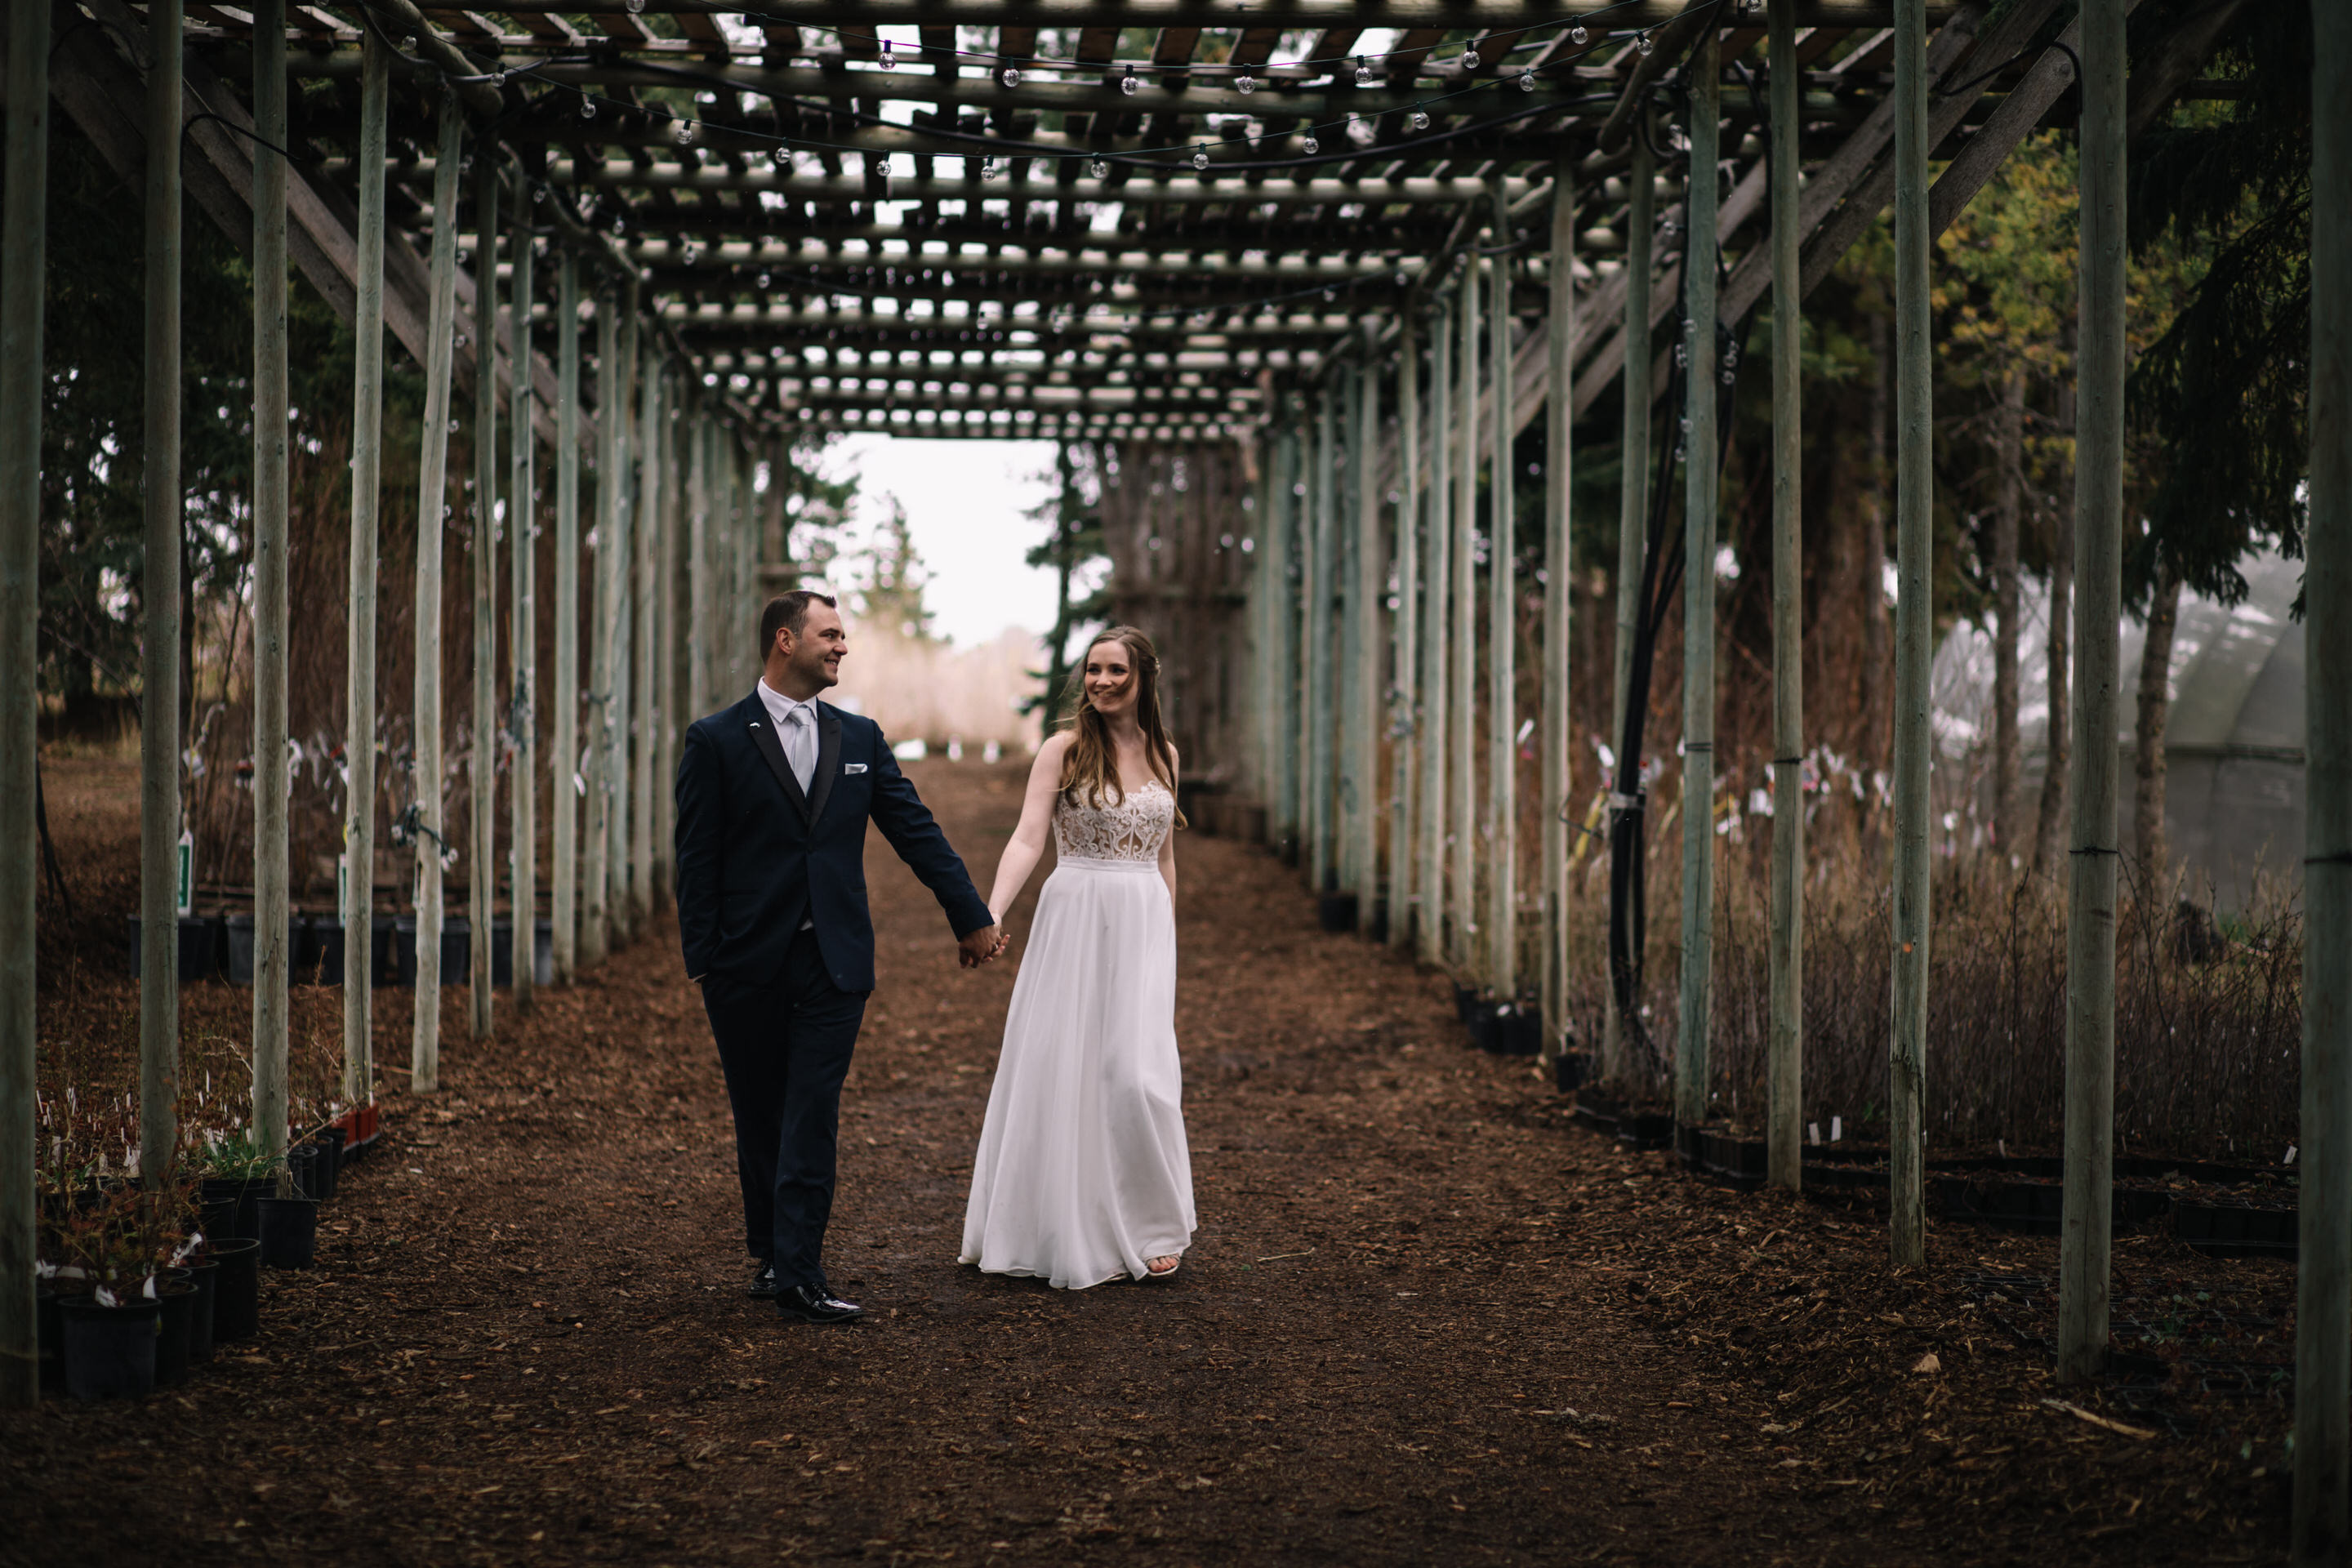 Best Calgary Photographers | Saskatoon Farm Wedding | Banff Wedding Photography | Canmore Wedding Photography | Intimate Weddings | Calgary Elopement | Anita Jeanine Photography | Greenhouse Wedding | Barn Wedding | Outdoor Wedding | Rustic Wedding